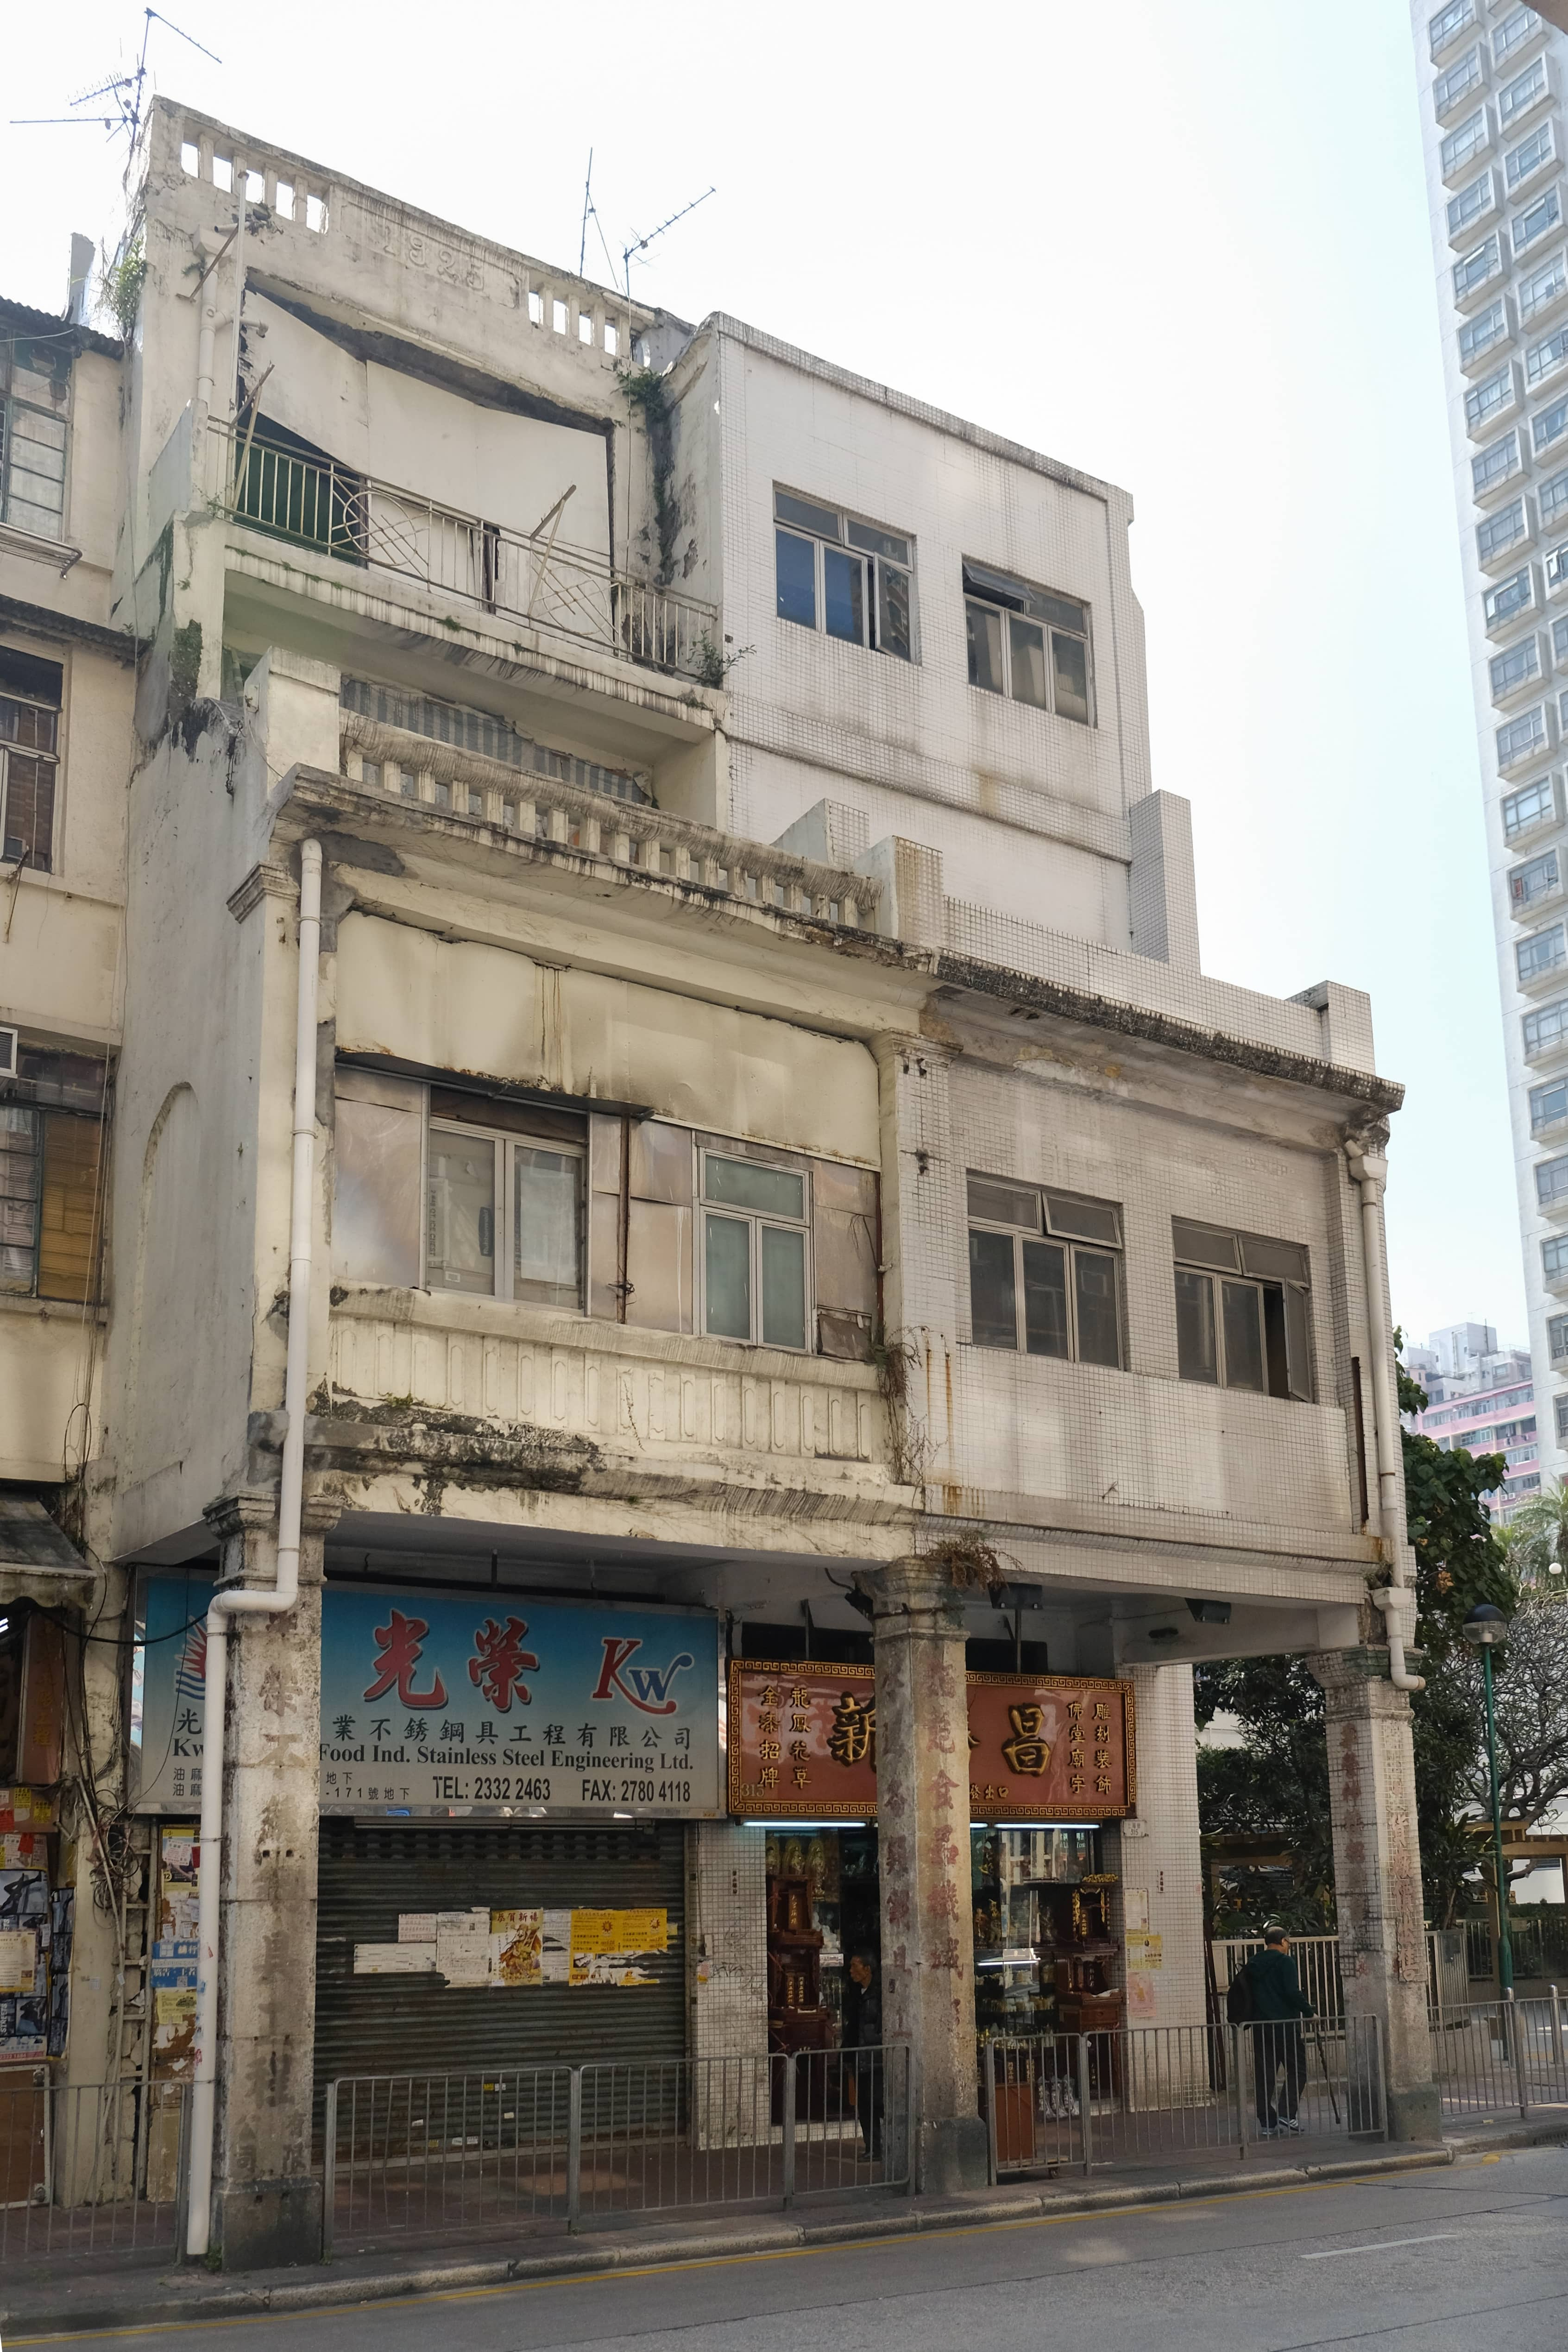 tenement buildings in hong kong Hong kong statistics browse by statistical subject housing and property  overview housing and property print.